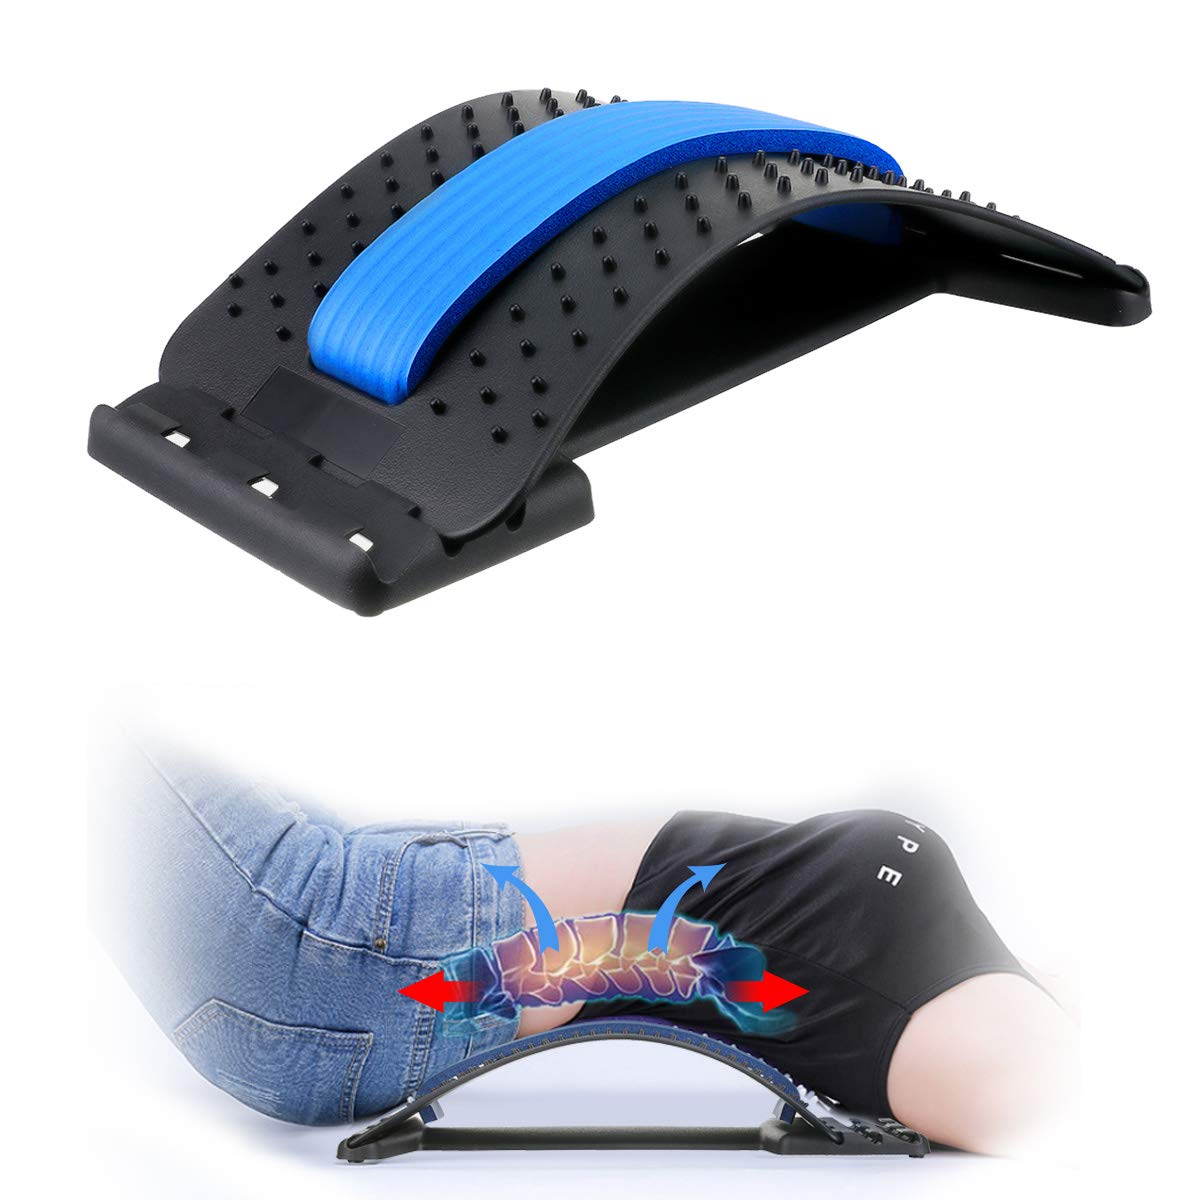 Back Stretcher,Lumbar Support Device Adjustable Pain Relief Back Massager Back Stretching Treatment for Spinal Stenosis Herniated Disc,Sciatica,Scoliosis Lumbar Back Stretcher